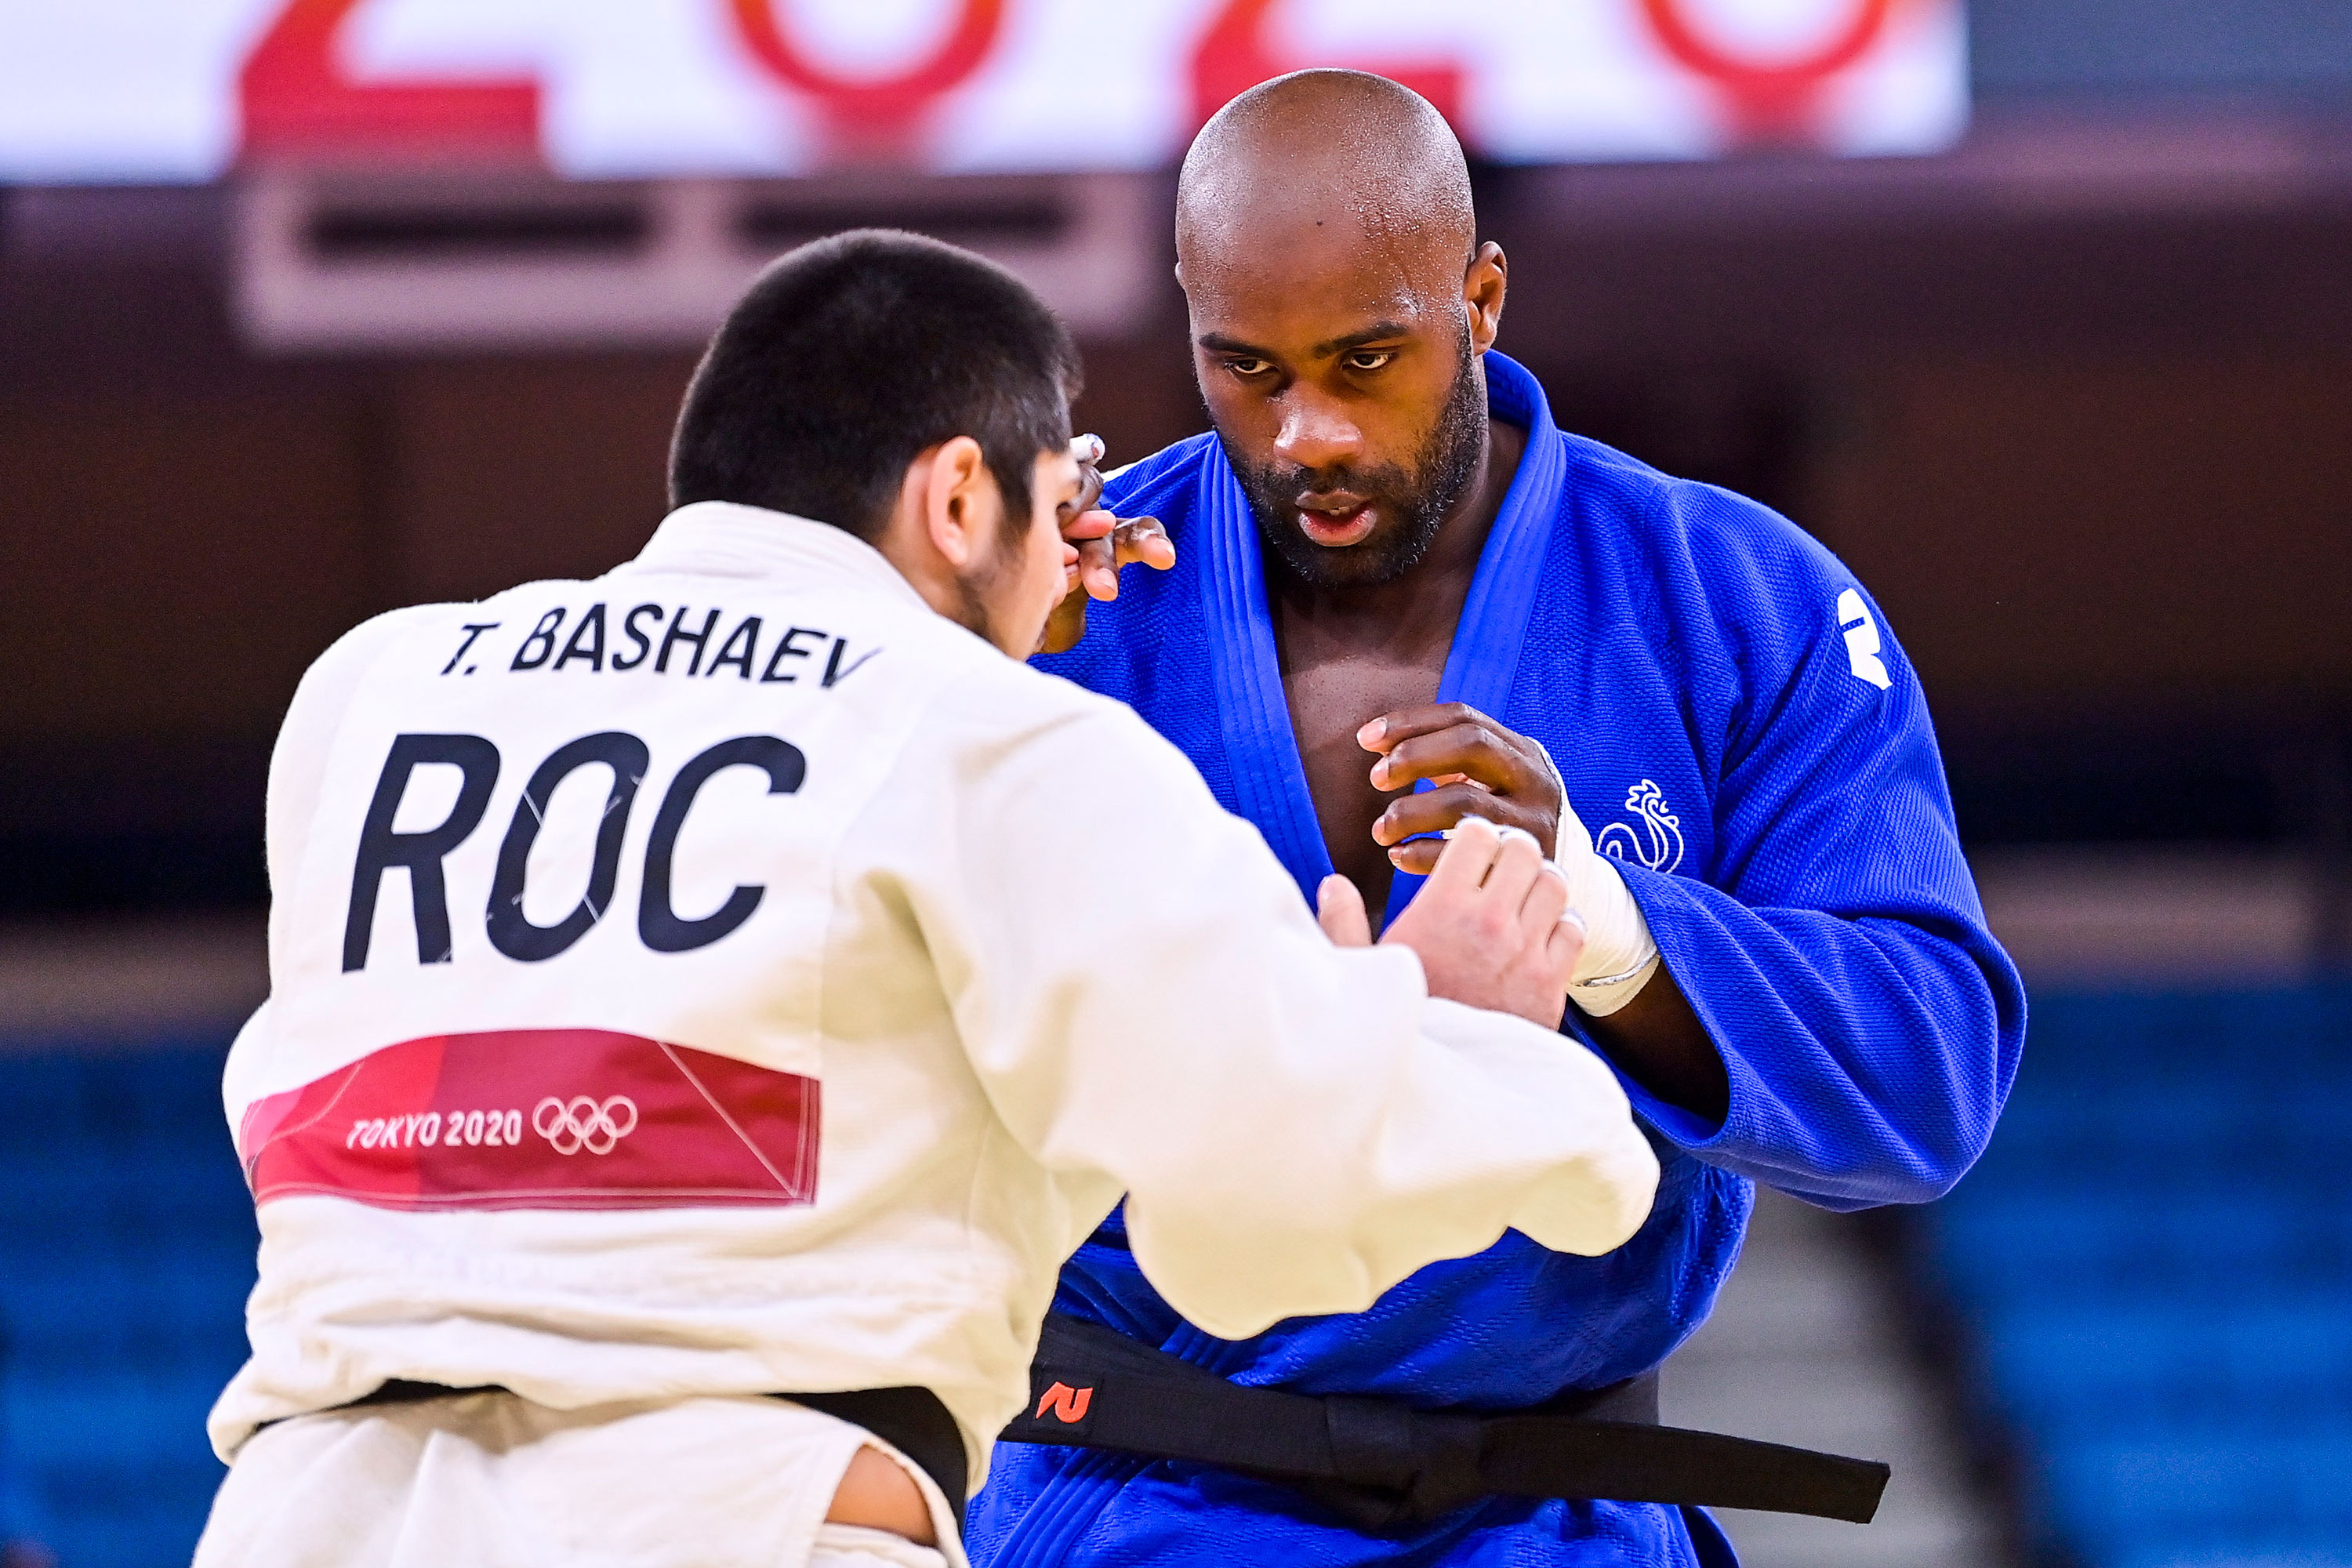 France's Teddy Riner competes against Russian Tamerlan Bashaev in the judo +100-kilograms quarterfinal on July 30.